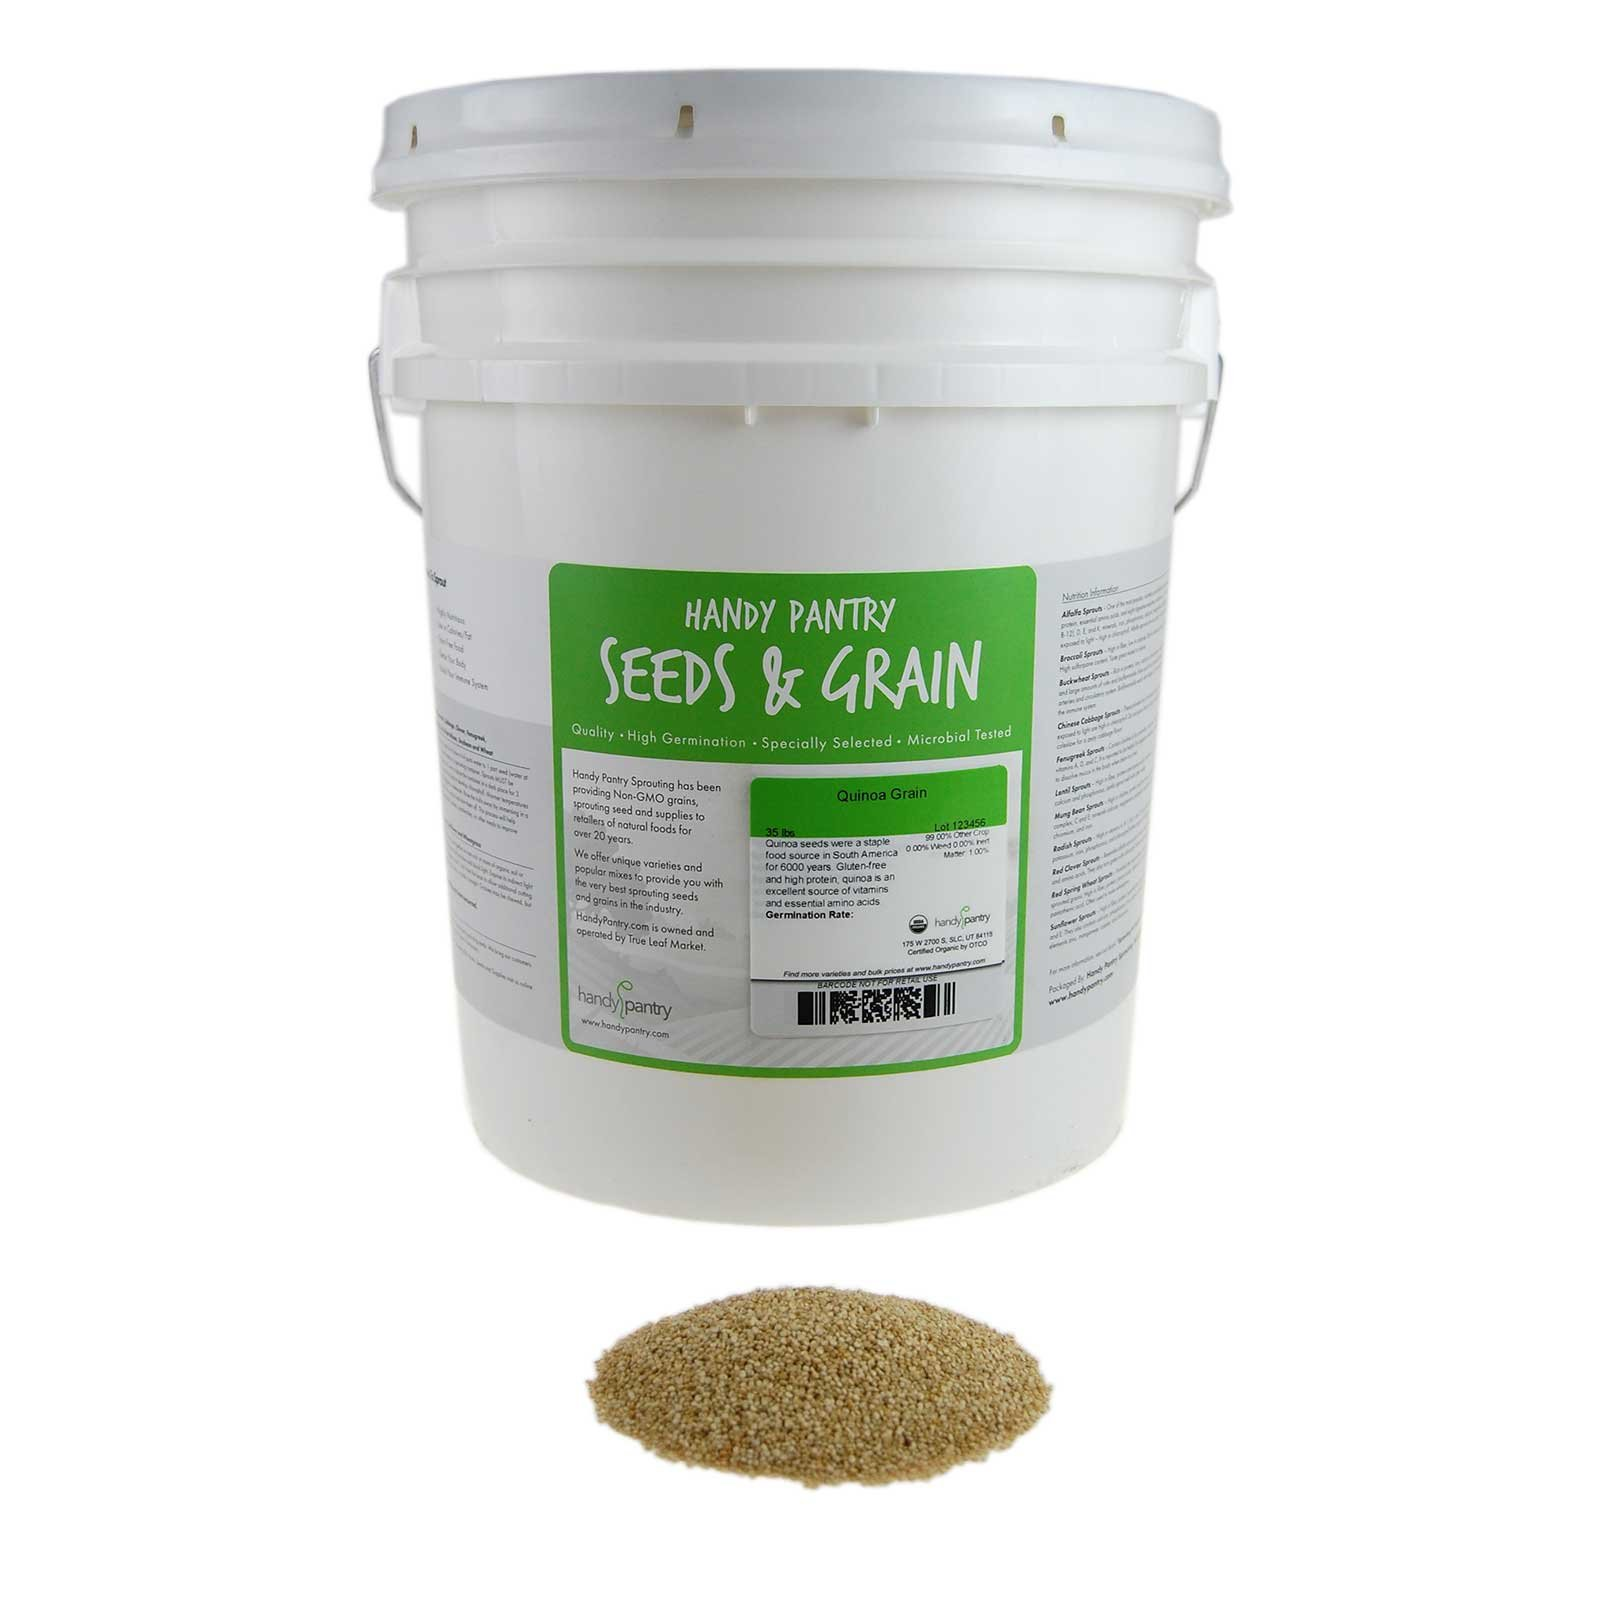 Certified Organic Quinoa Grain Sprouting Seeds - 35 Lbs - Grind for Quinoa Flour, Cereal, Emergency Food Storage More